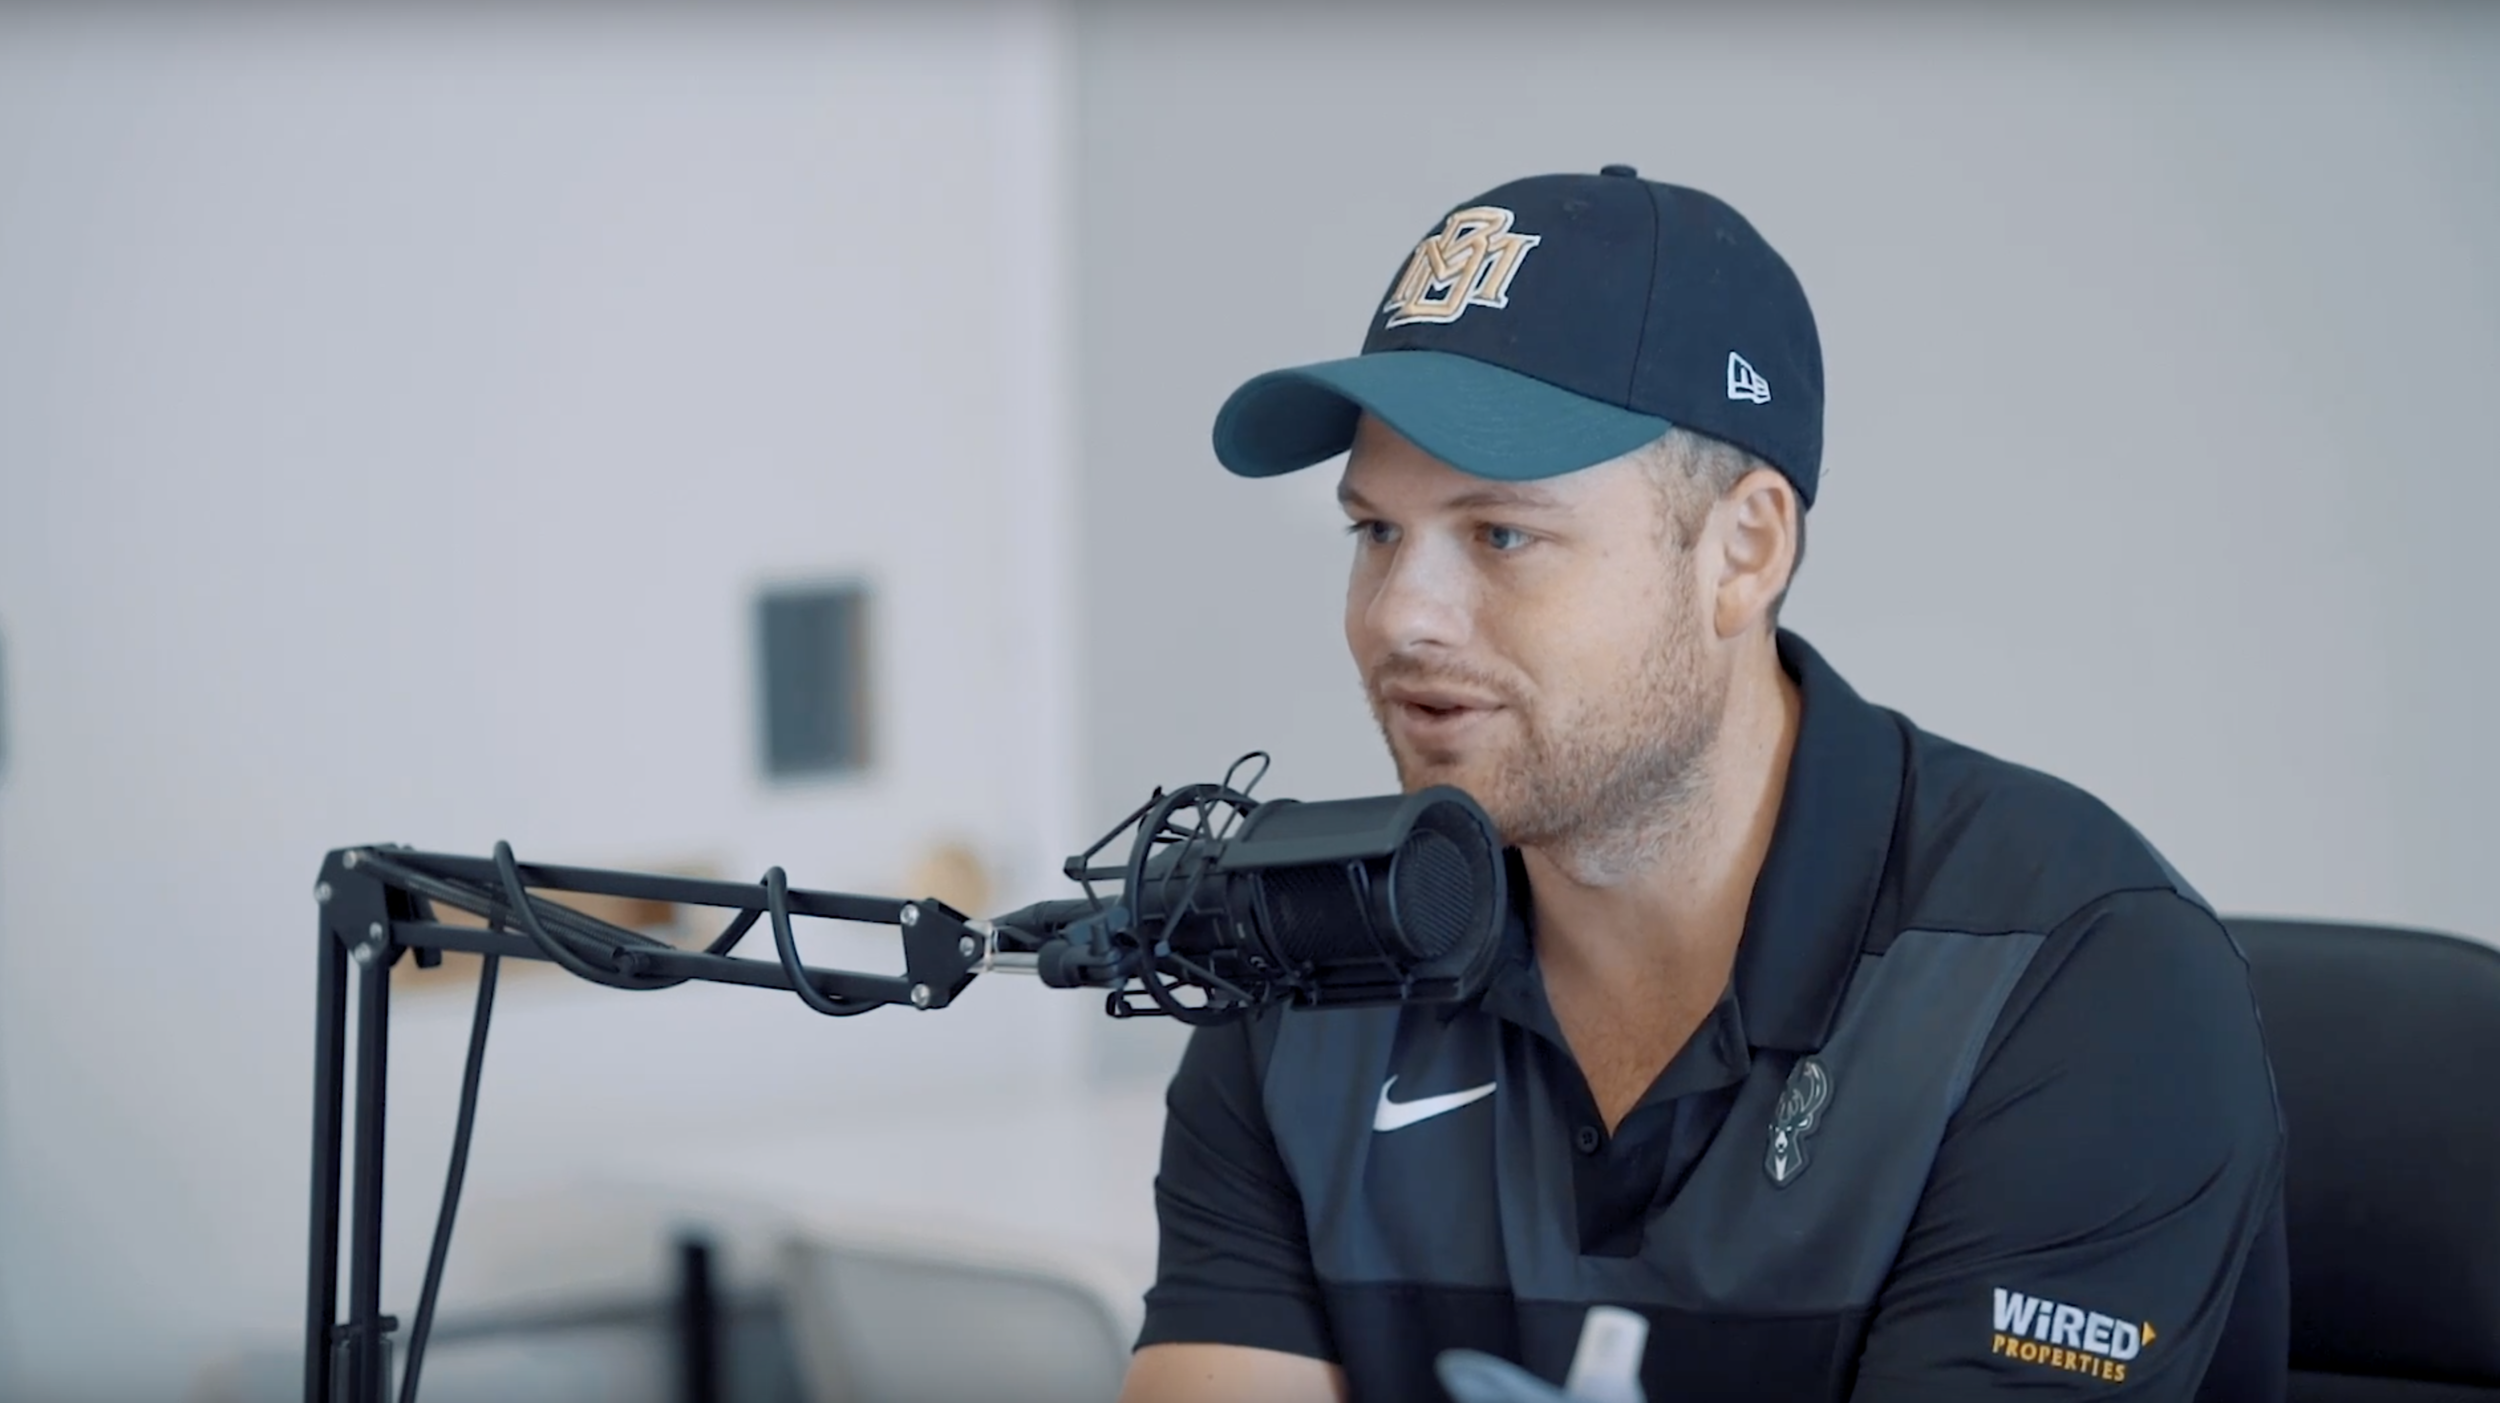 The Richie Burke Story - Collecting golf balls from yards and selling them at a young age was just the start for the founder of GoGeddit Marketing & Media. After multiple setbacks, Richie Burke dives into how he has built GoGeddit Marketing & Media from scratch.